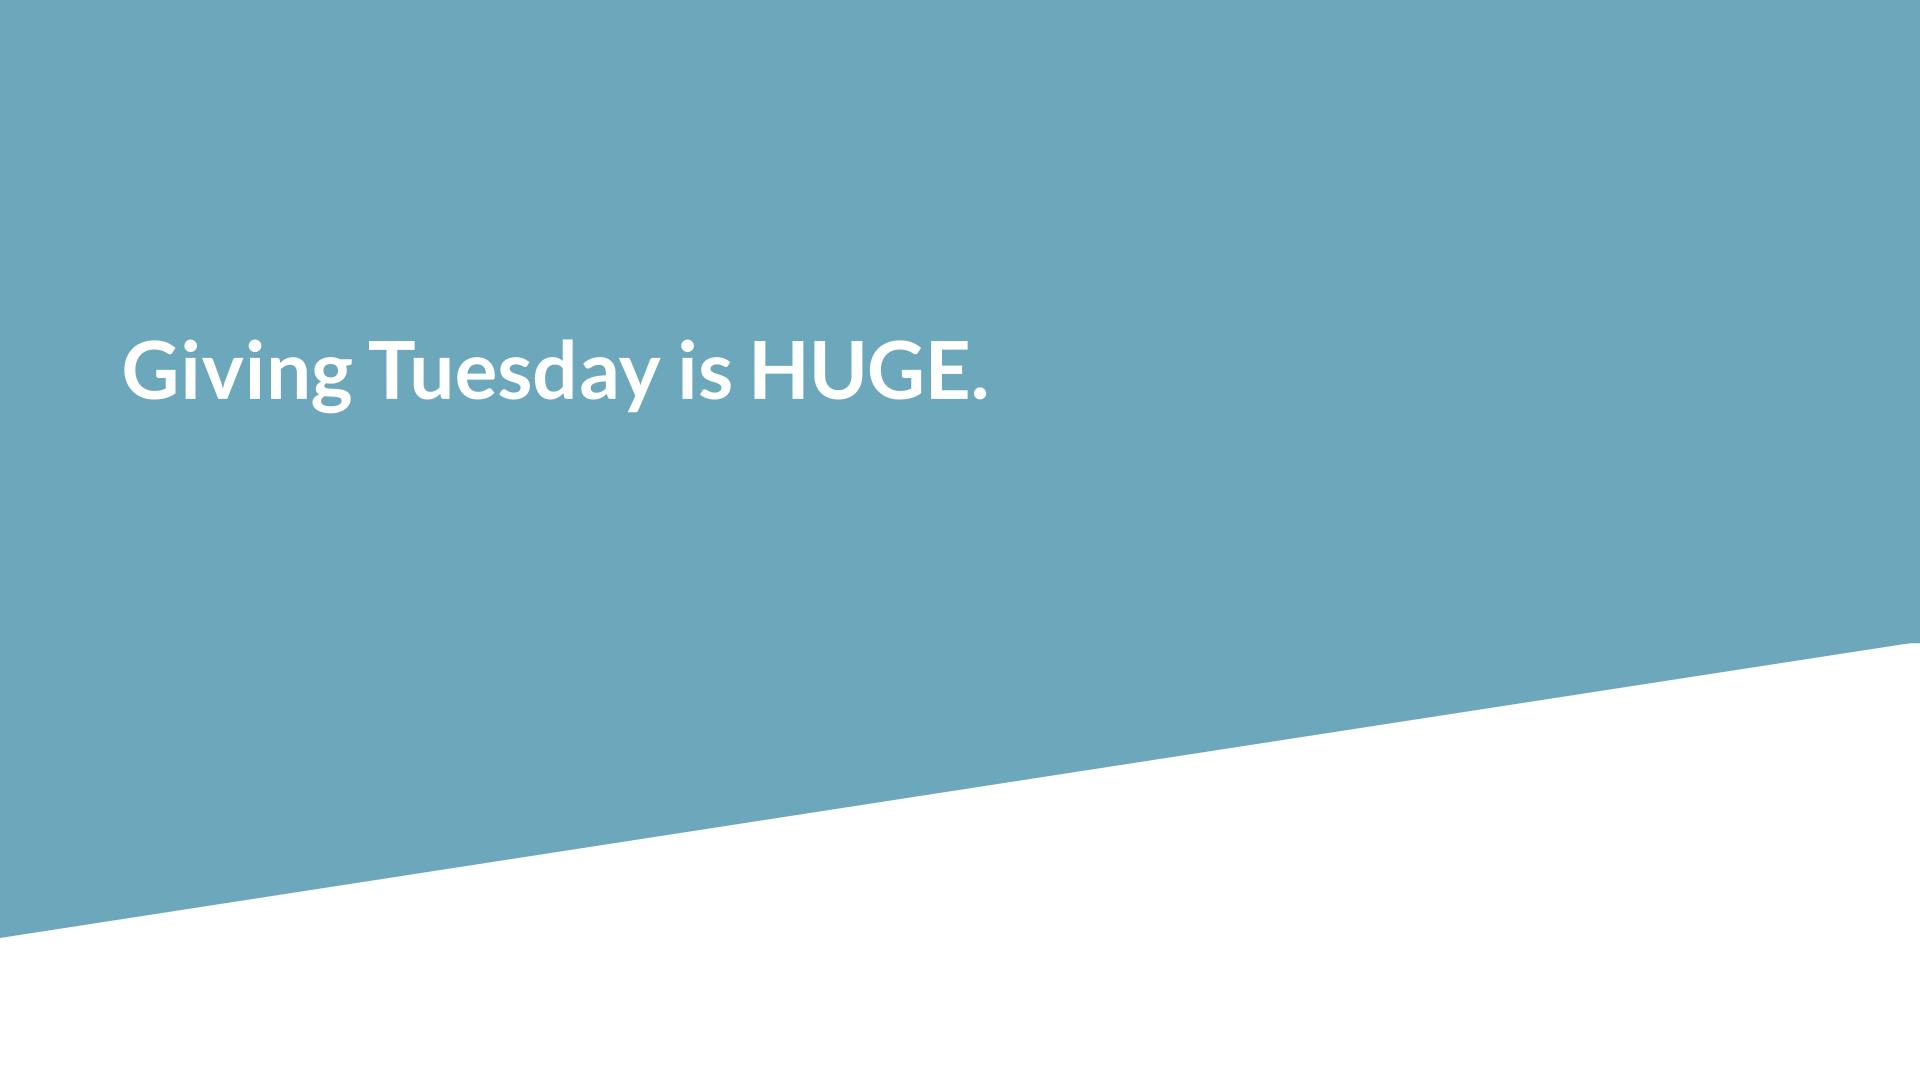 Slide 3: Giving Tuesday was HUGE.